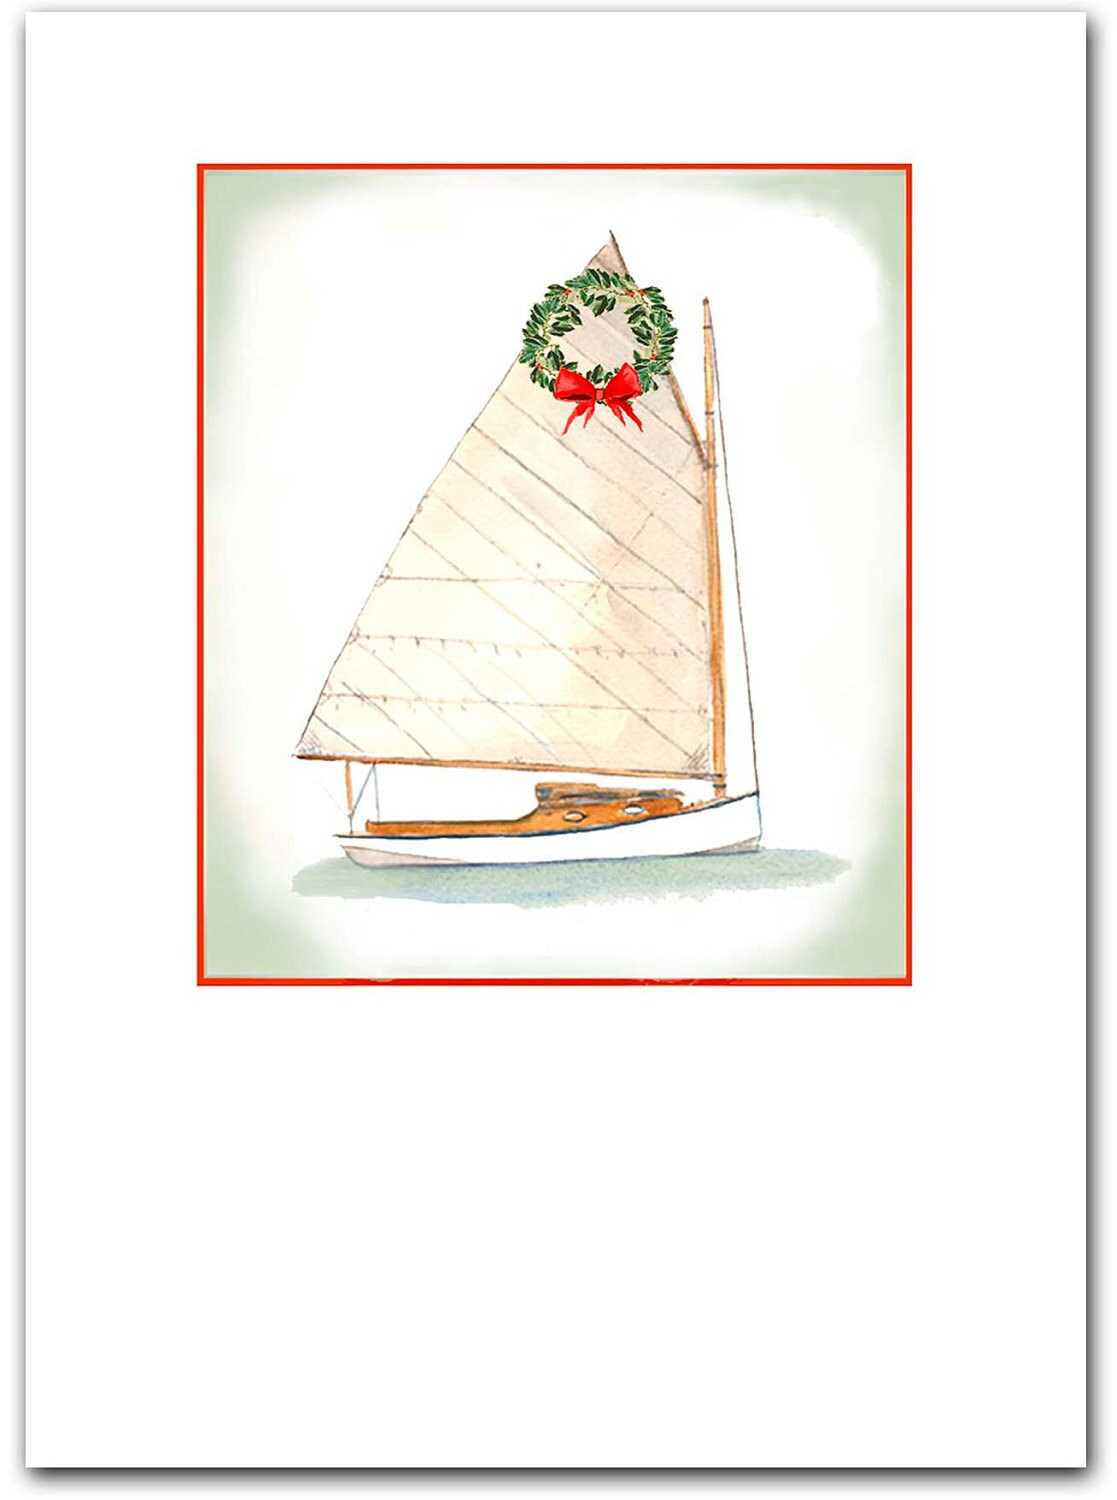 Catboat Christmas cards. 10 per box Catboat cards | Etsy